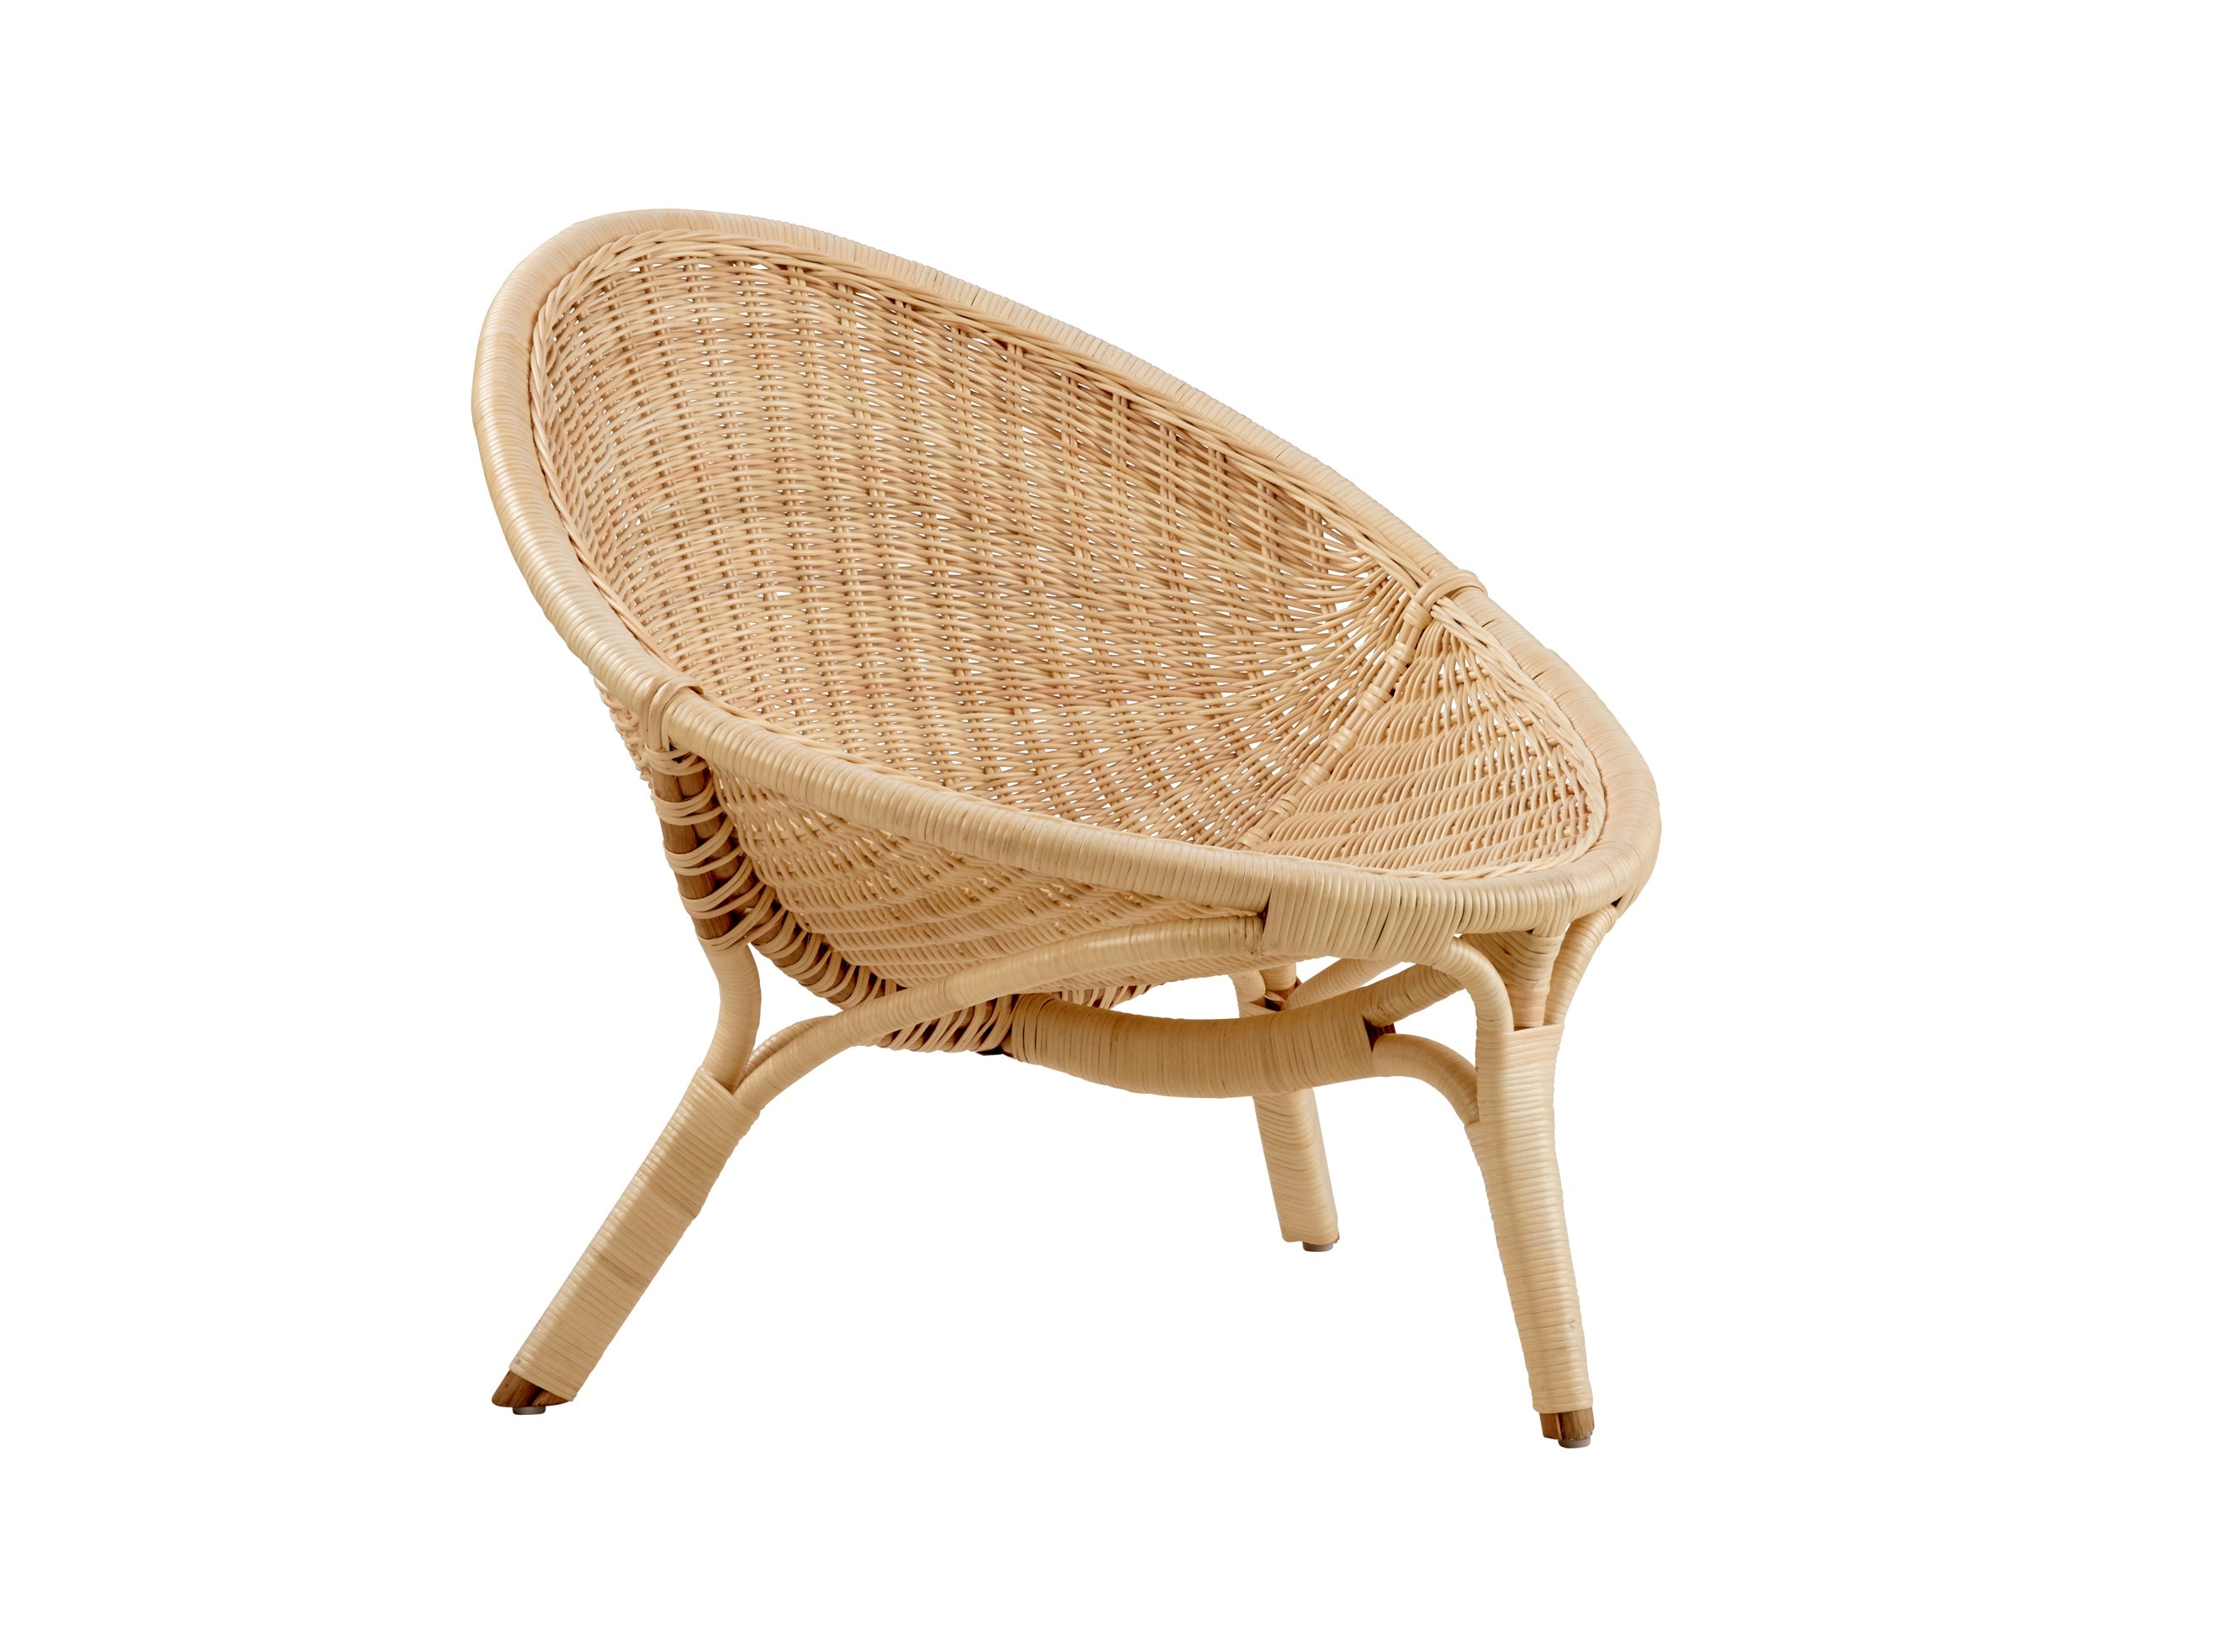 Subscription_OMNI_Nanna_Ditzel_Rana_Chair_Danish_design_furniture_office_comfortable_elegant_material_rattan